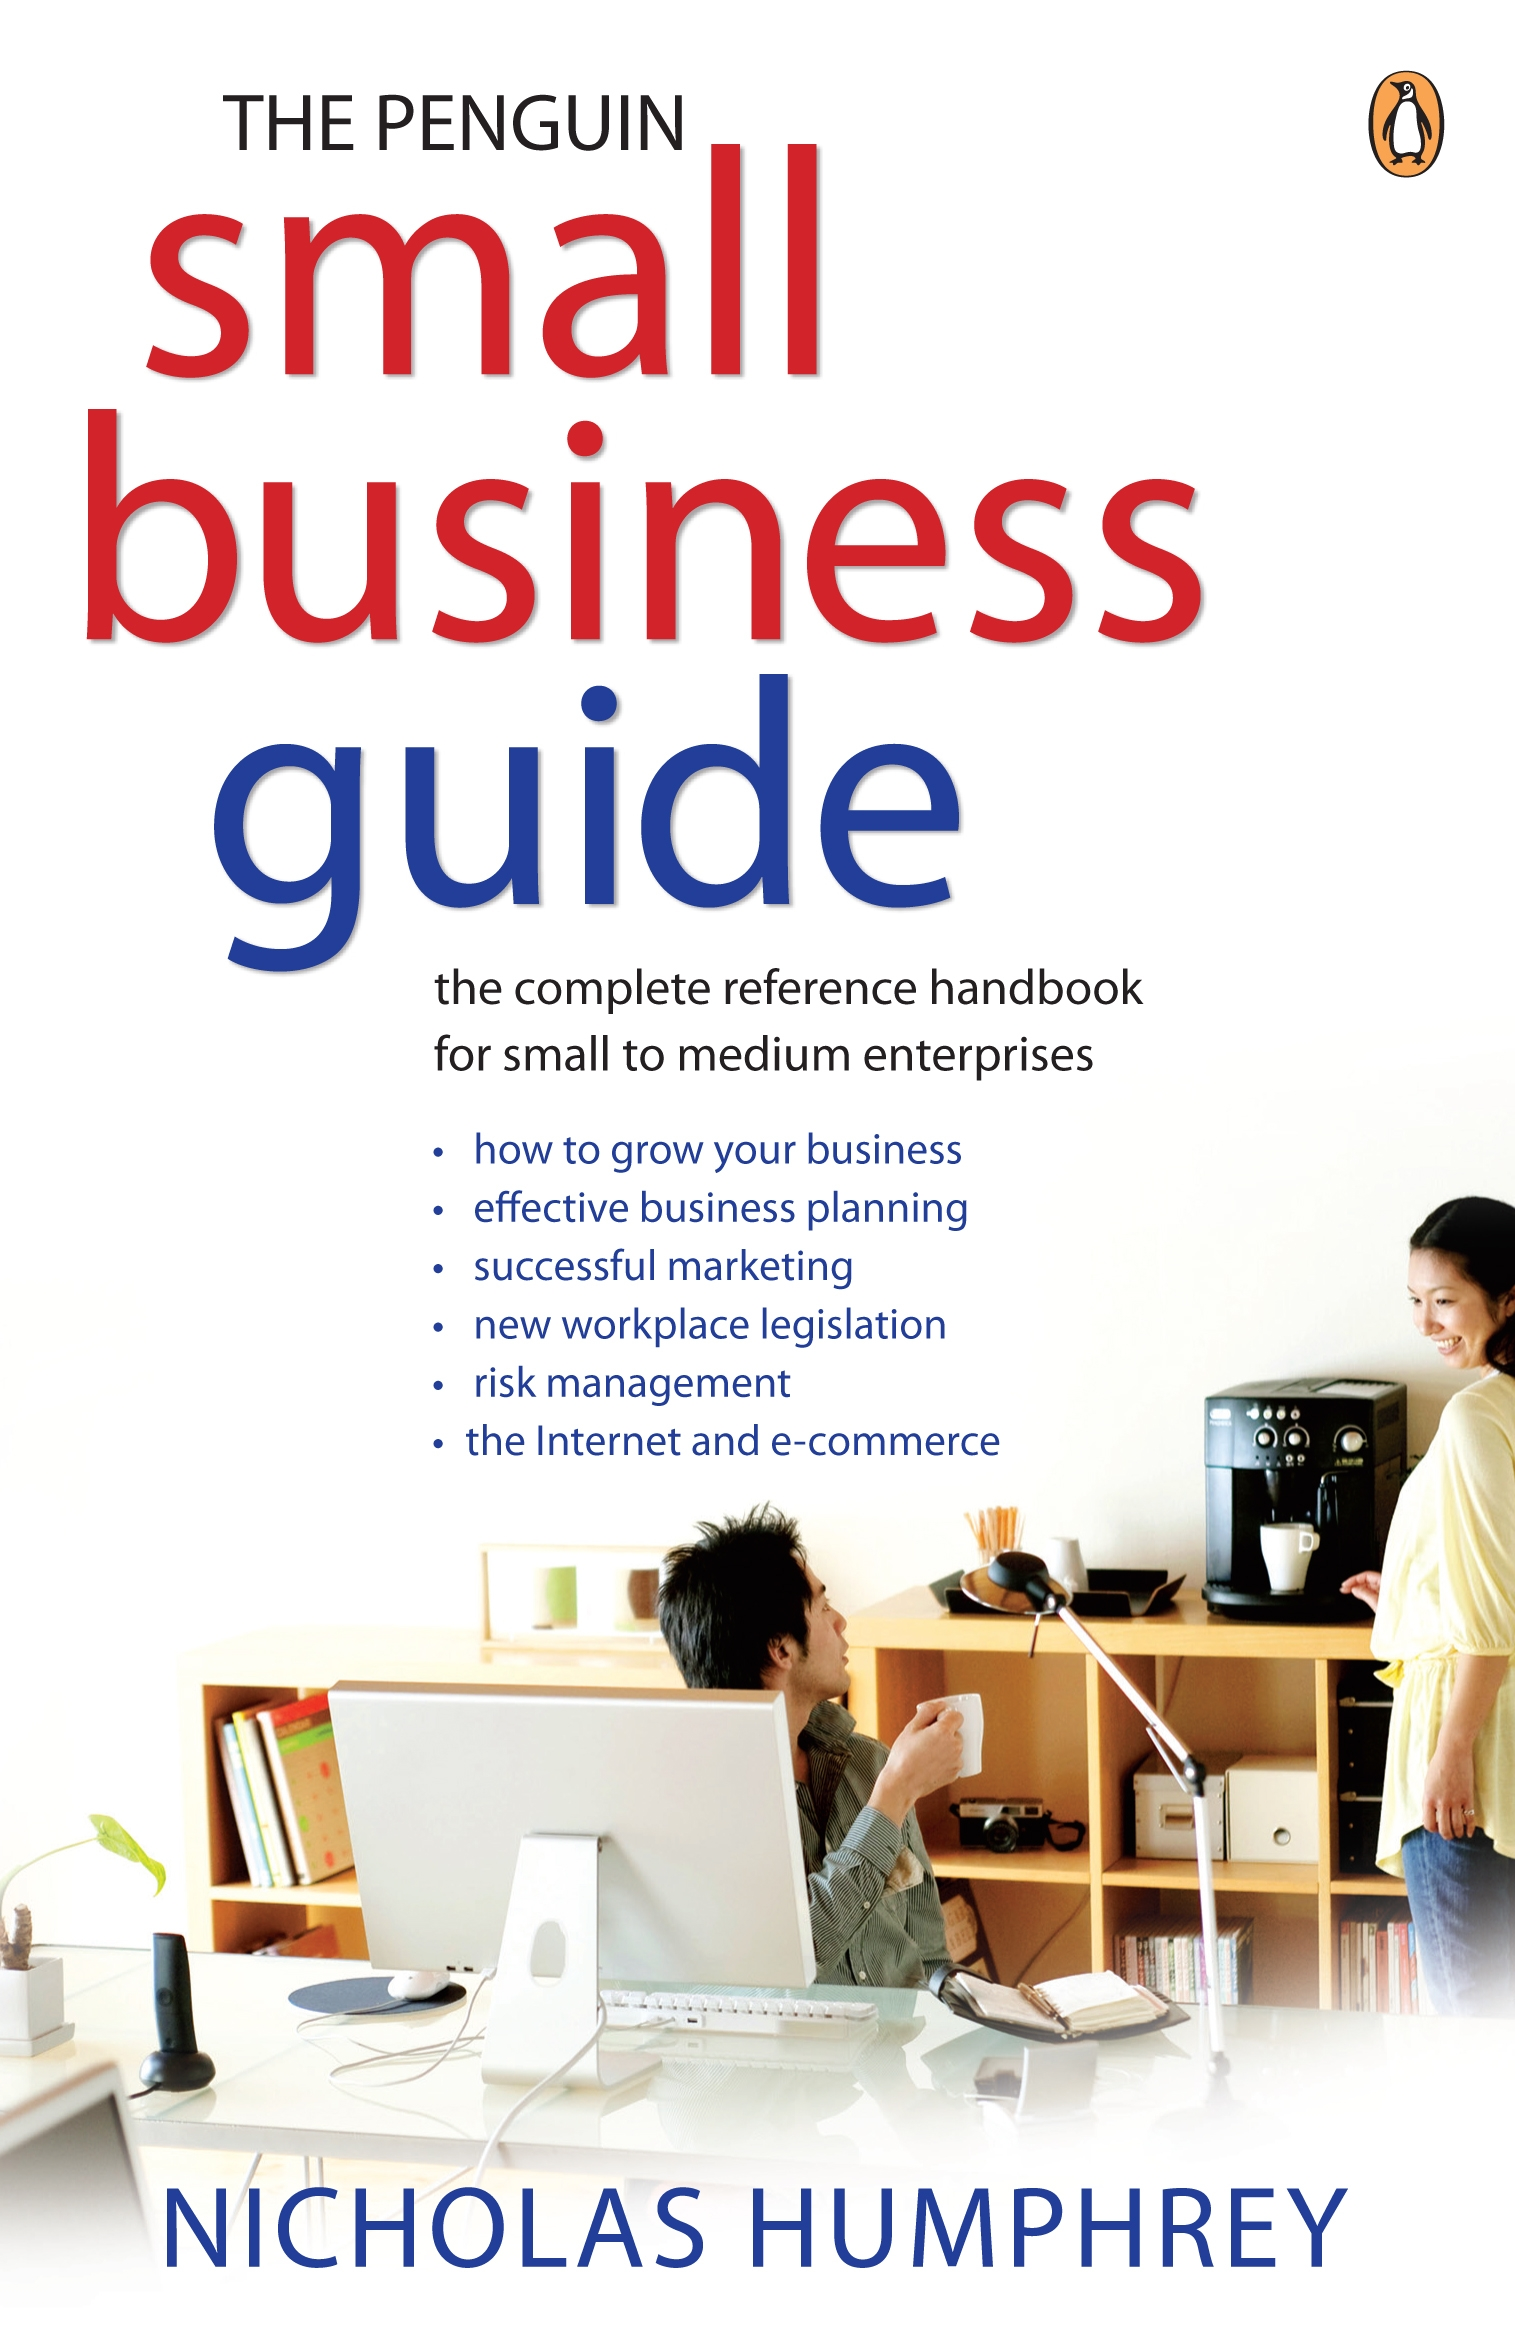 Business Book Cover Jobs : Penguin small business guide the complete reference